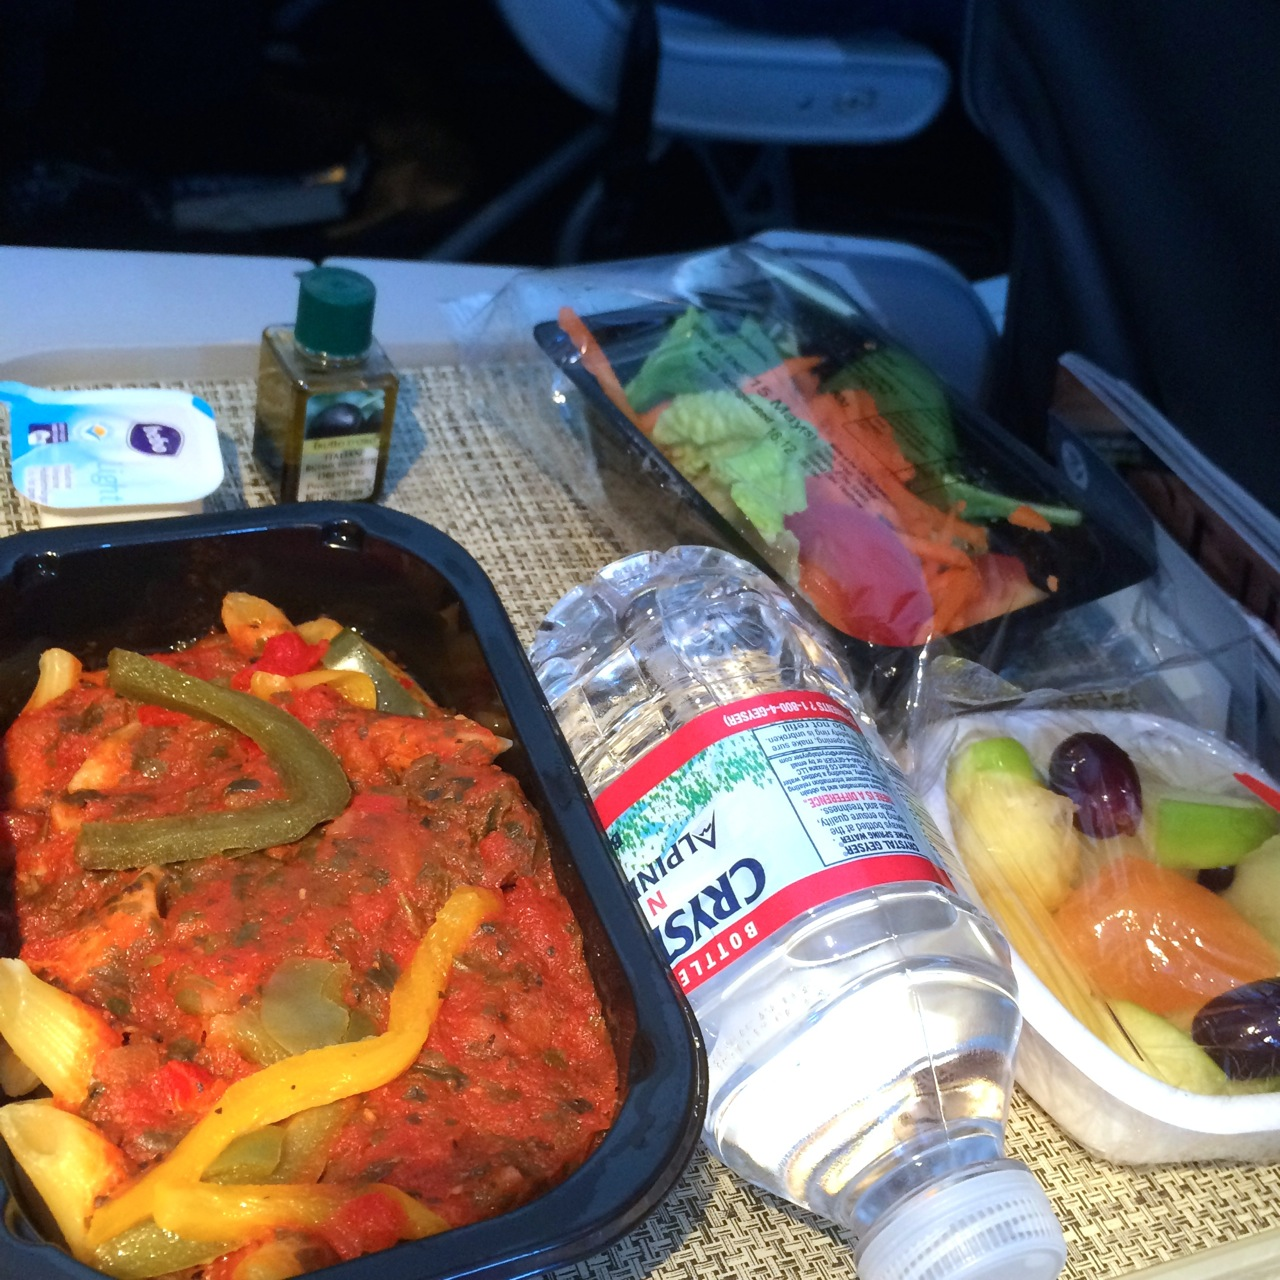 https://i1.wp.com/fatgayvegan.com/wp-content/uploads/2015/05/vegan-meal-American-Airlines.jpg?fit=1280%2C1280